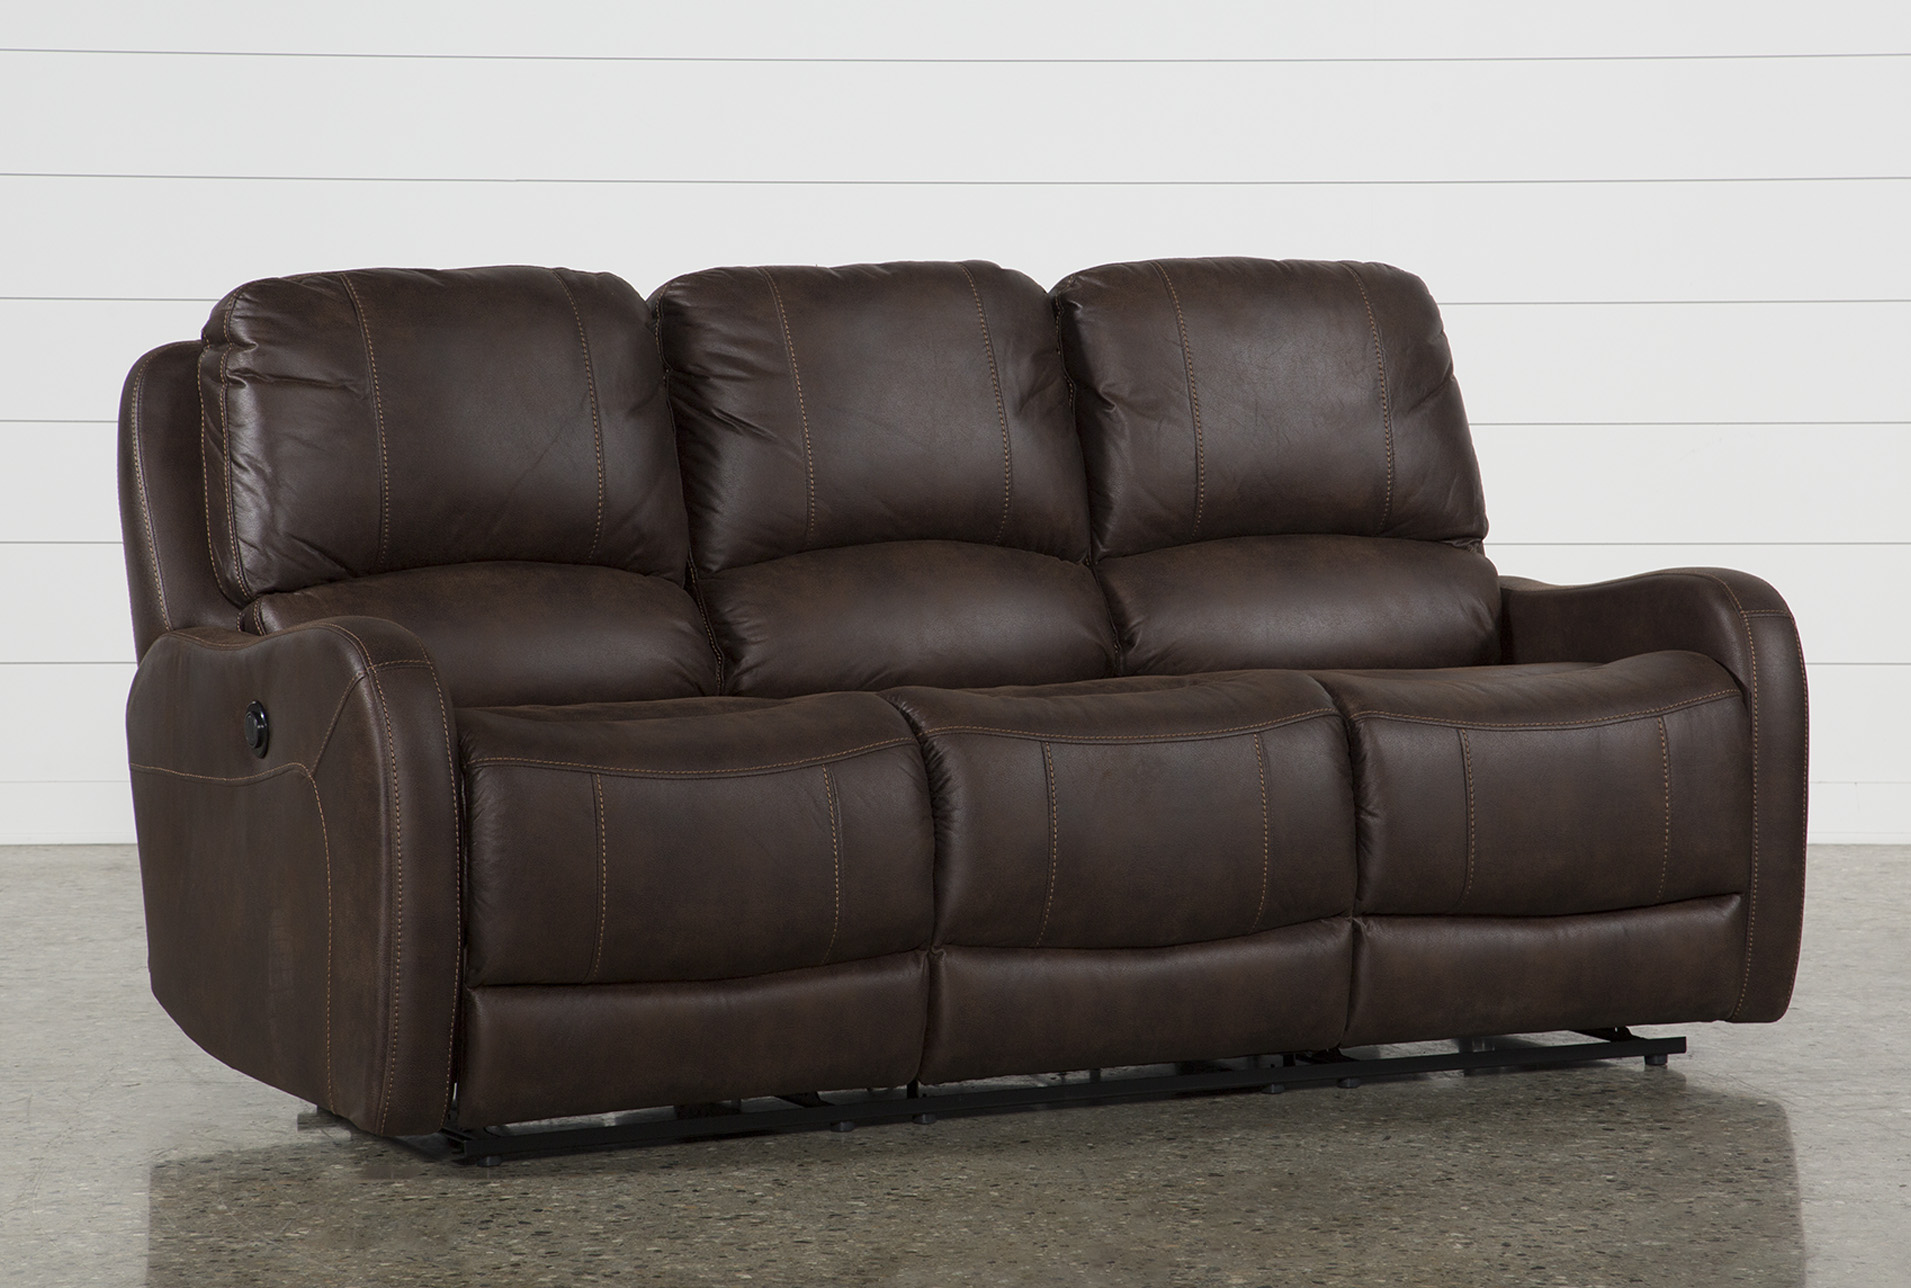 High Performance Fabric Reclining Sofas for Your Home & Office